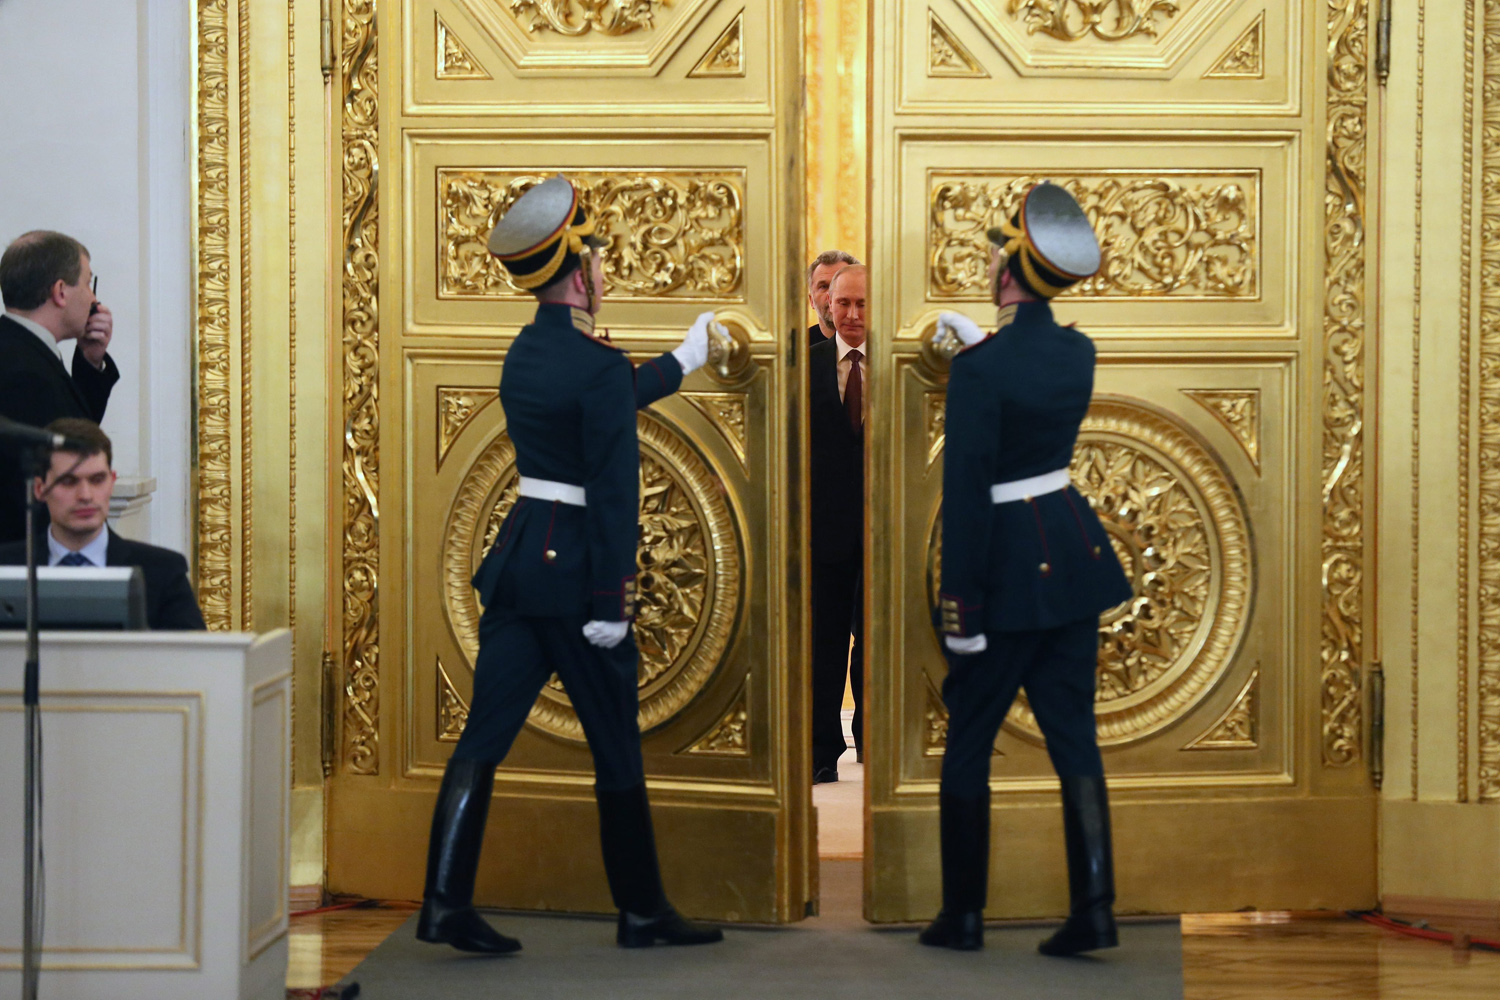 Mar.18, 2014. Russia's President Vladimir Putin arrives to sign a treaty with Crimean leaders on reunification with Russia in the Grand Kremlin Palace in Moscow, Russia. Crimea and Sevastopol will join Russia as two separate regions, President Putin said, adding that he would sign treaties immediately.